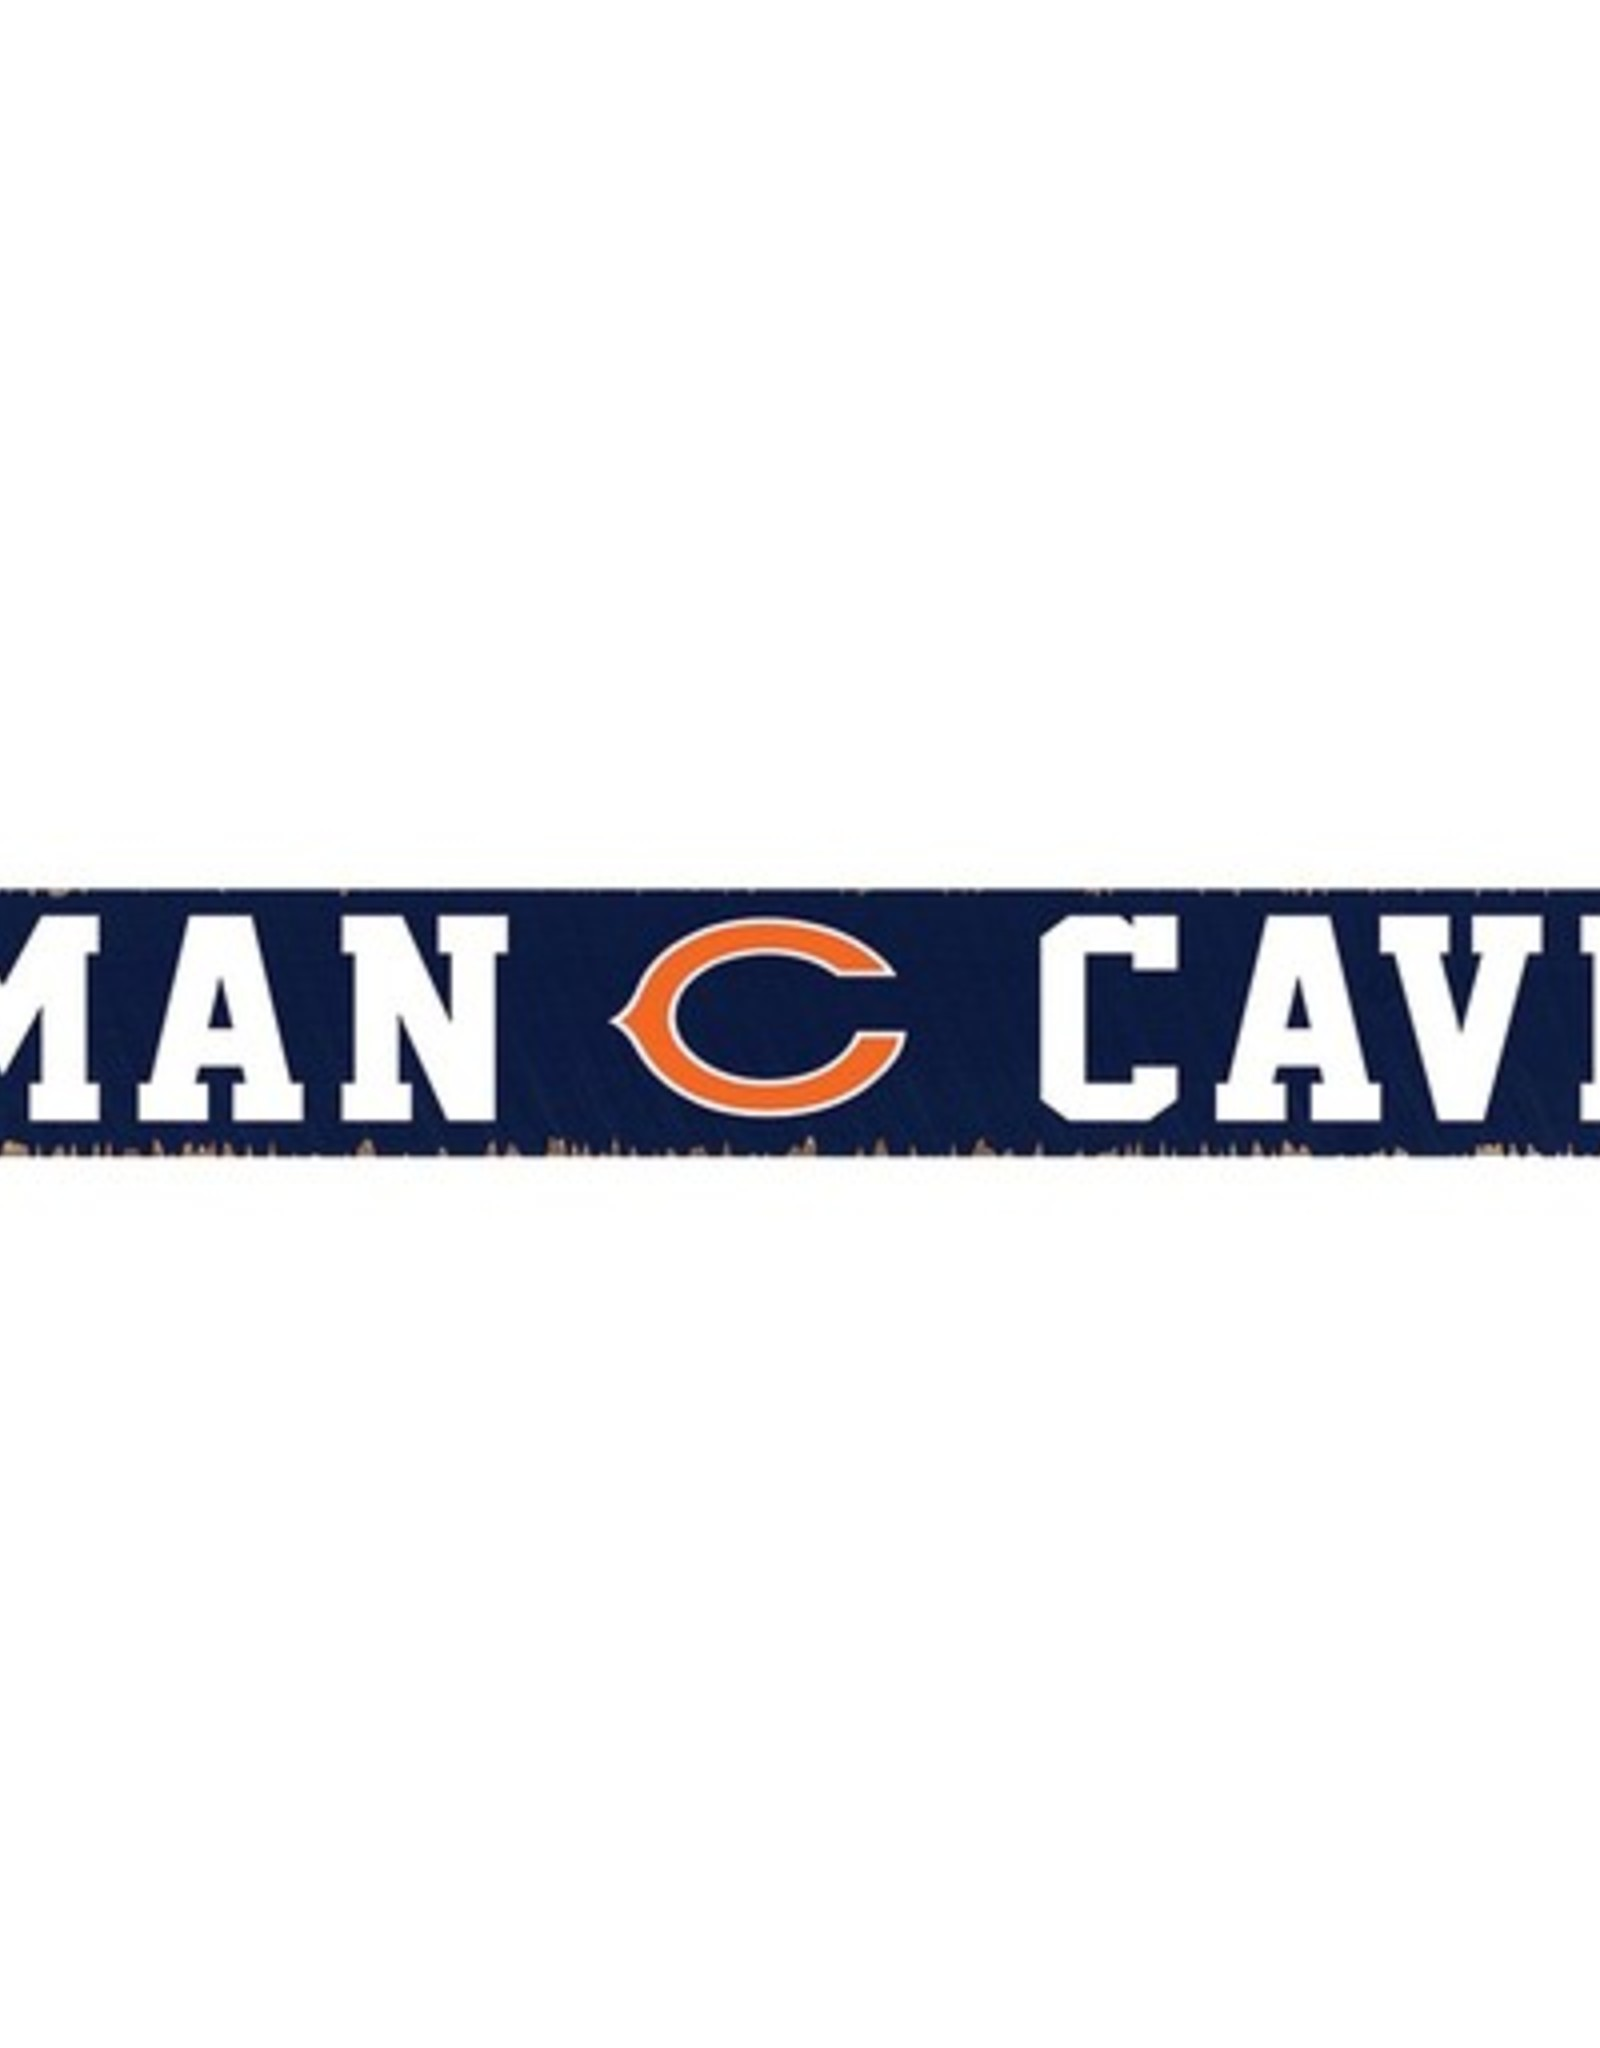 RUSTIC MARLIN Chicago Bears Rustic Man Cave Sign